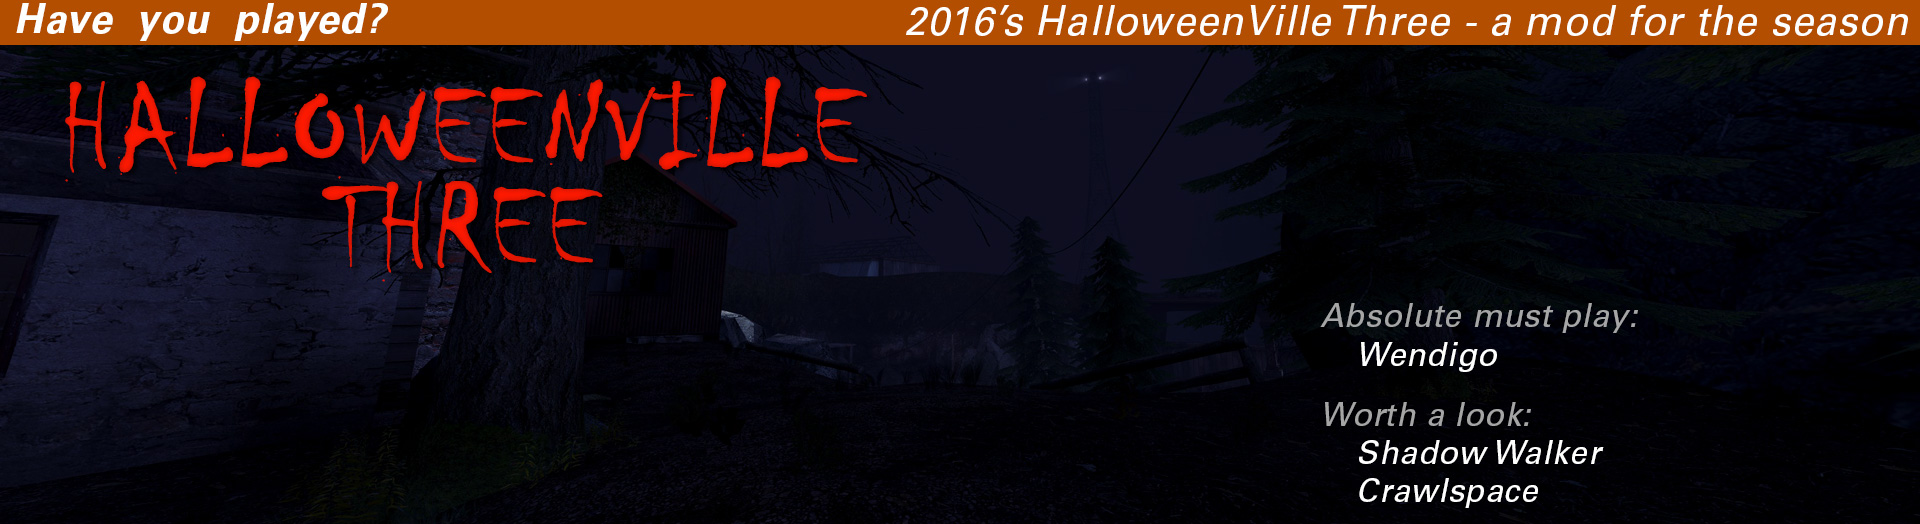 Have you played HalloweenVilleThree?